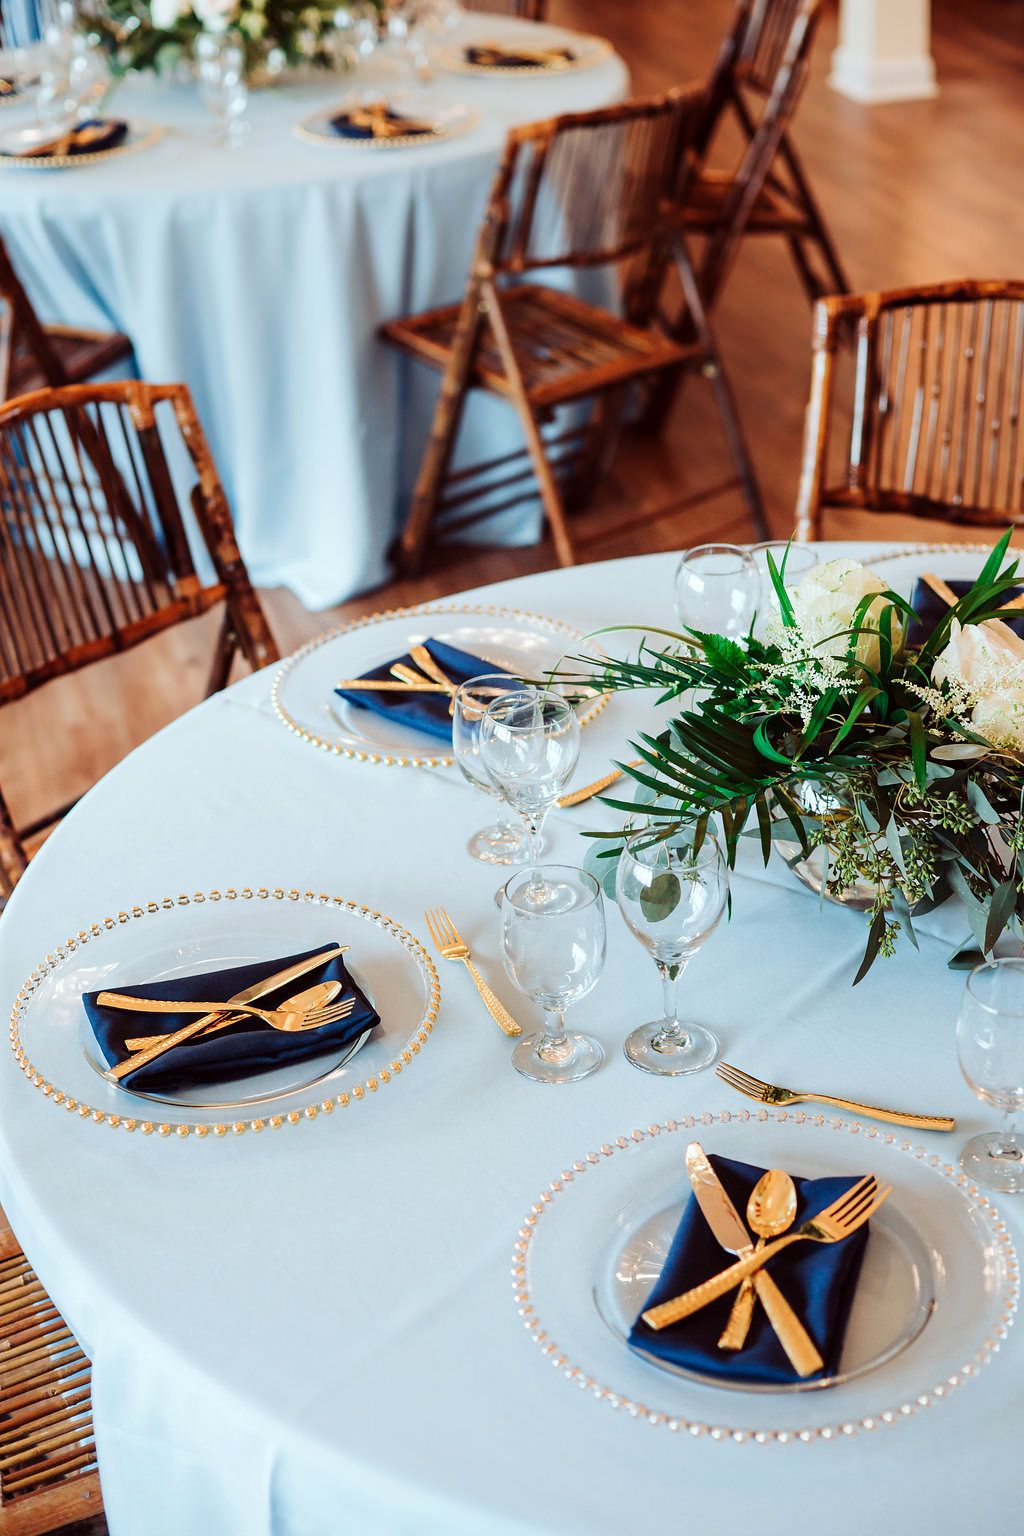 Elegant Coastal Tropical Wedding Reception Table Decor With Tropical Greenery Centerpiece Gold Flatware And Gold Beaded Glass Charger Light Blue Linen Tablecloth And Navy Blue Napkins Tampa Bay Wedding Linen Rentals